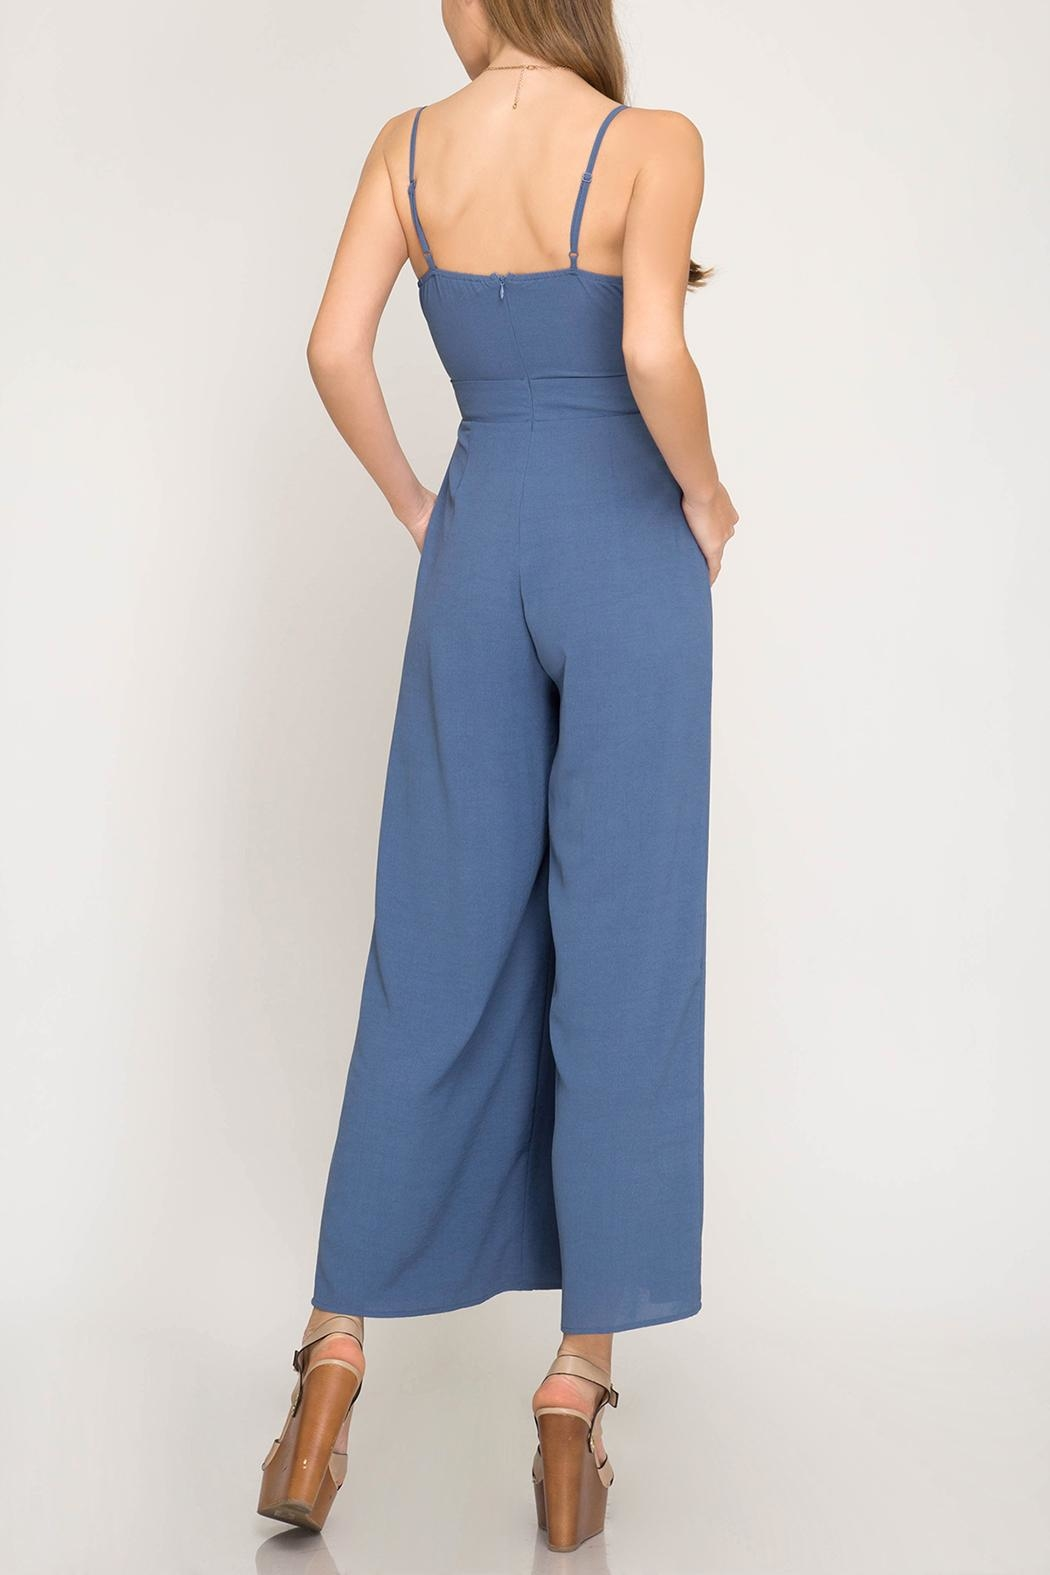 She + Sky Tie Detail Jumpsuit - Front Full Image